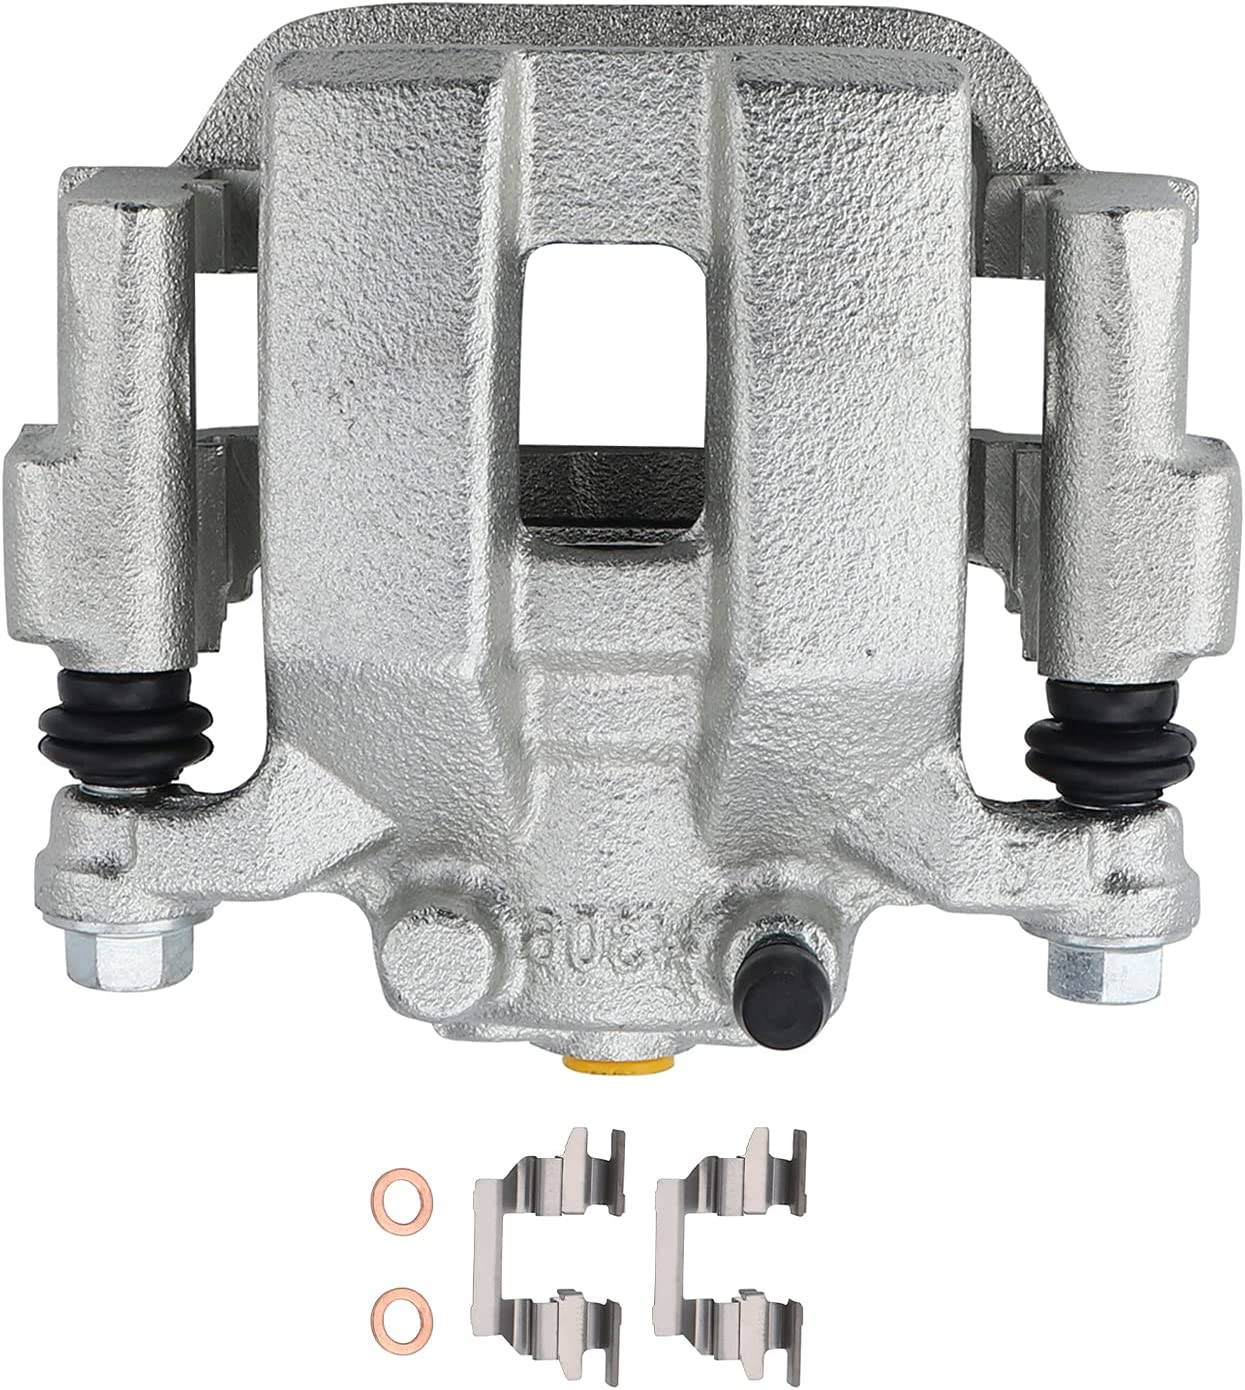 MAYASAF 19B2793A Rear Left Brake Driver Ass Caliper Fixed price price for sale Side